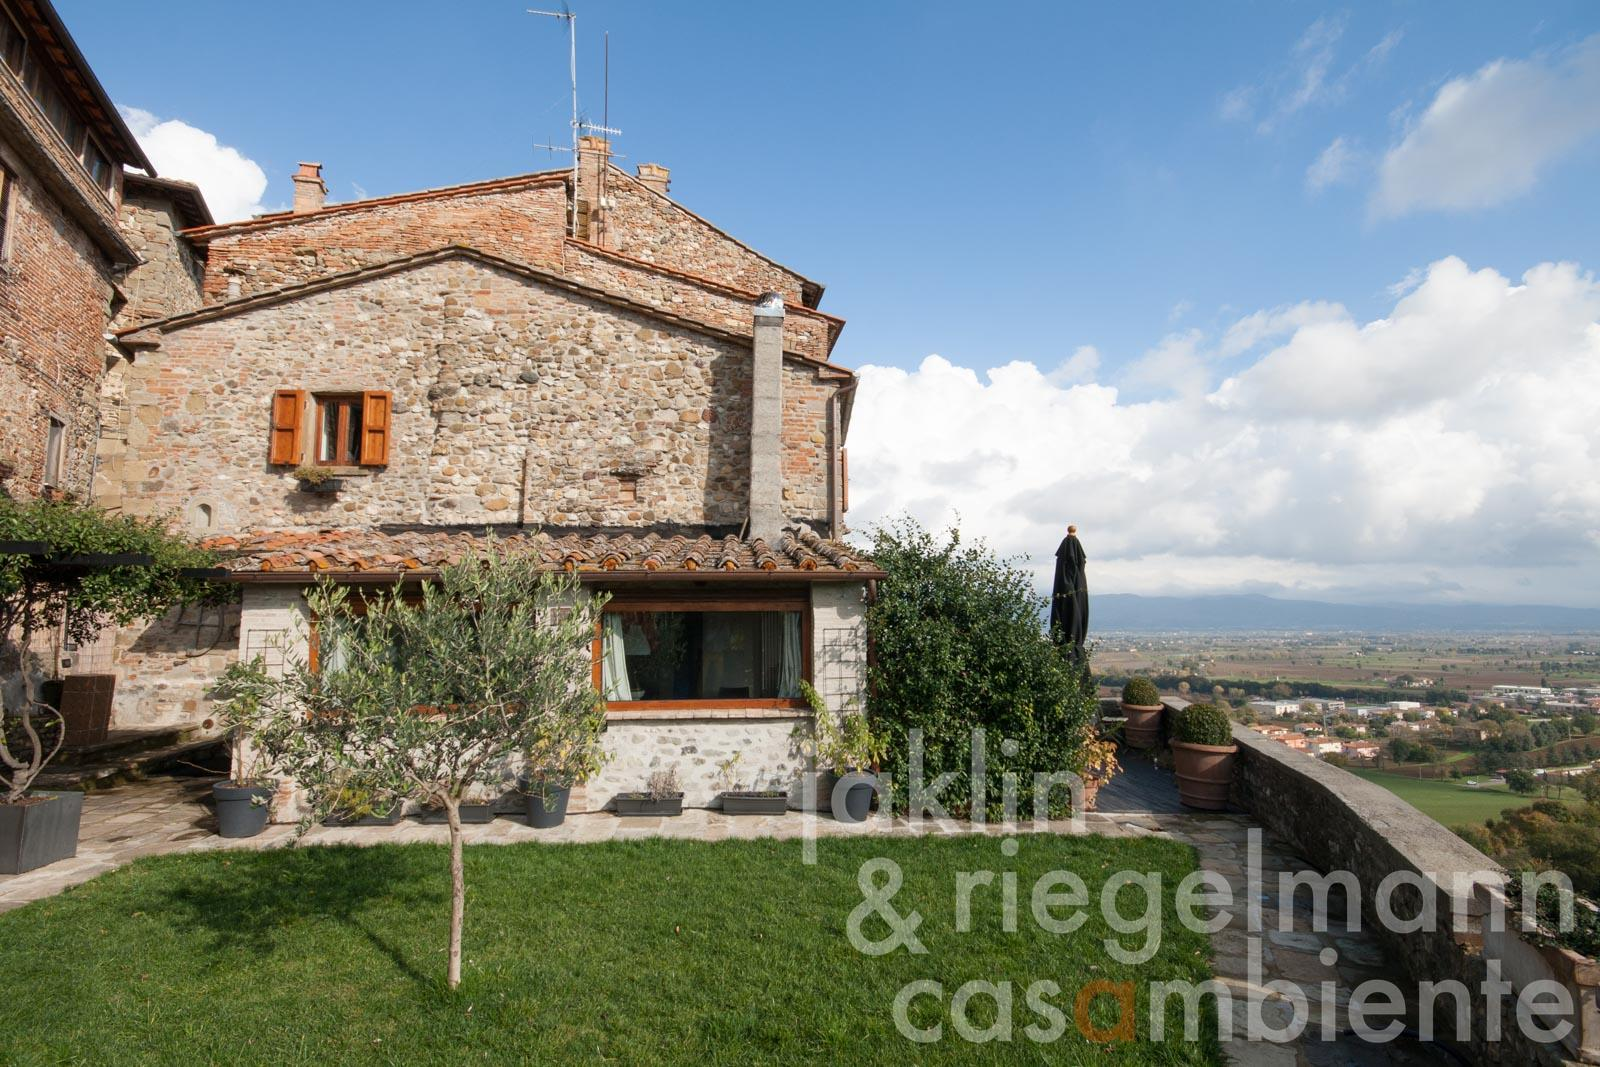 The restored house for sale in Anghiari with garden on the town walls and panoramic view across the Tiber Valley